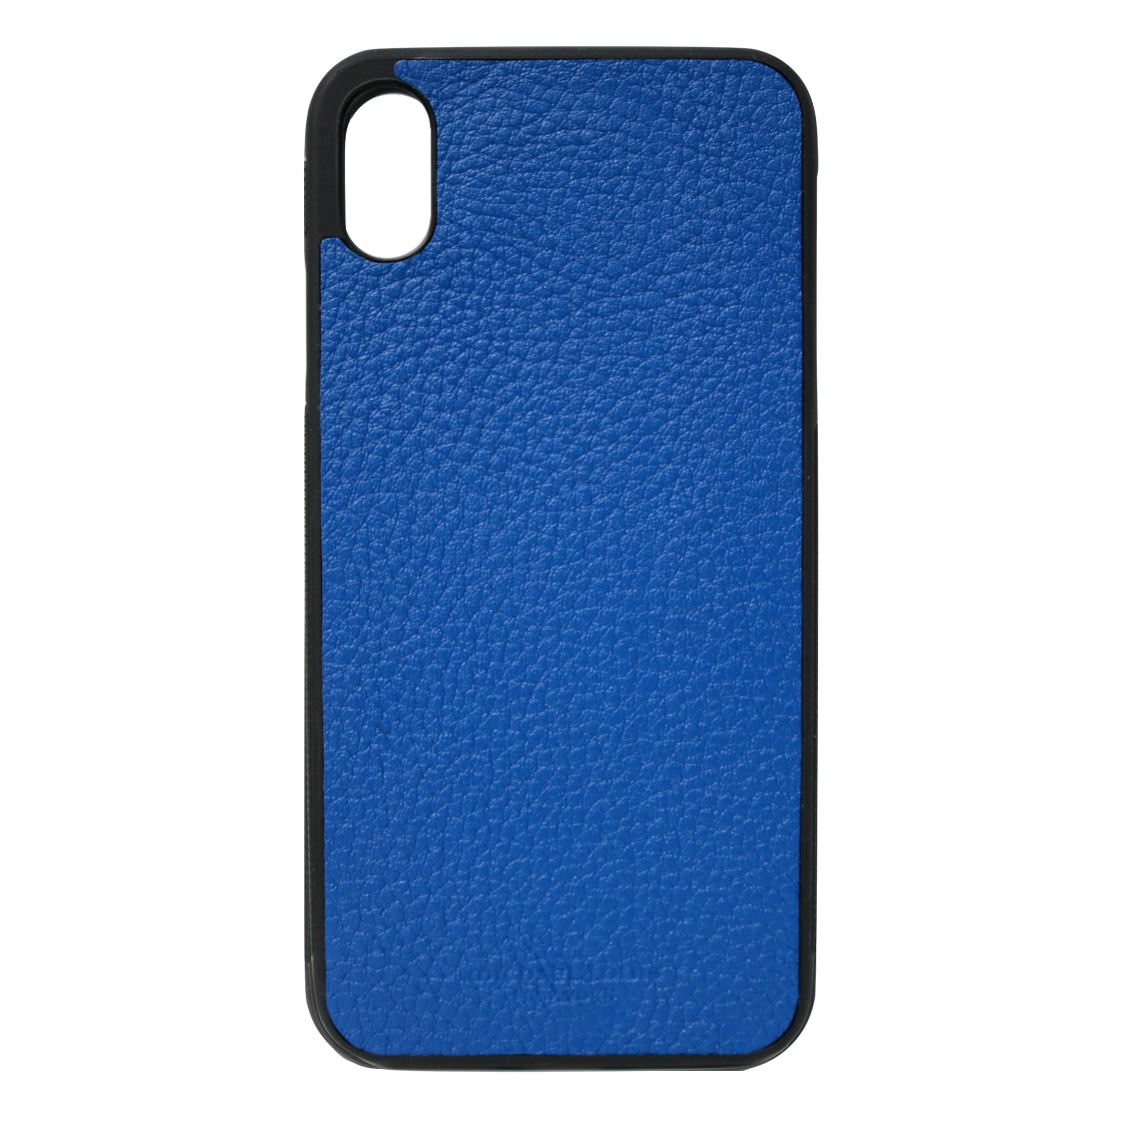 meet 20625 c342a Blue Pebbled Leather iPhone XR Case